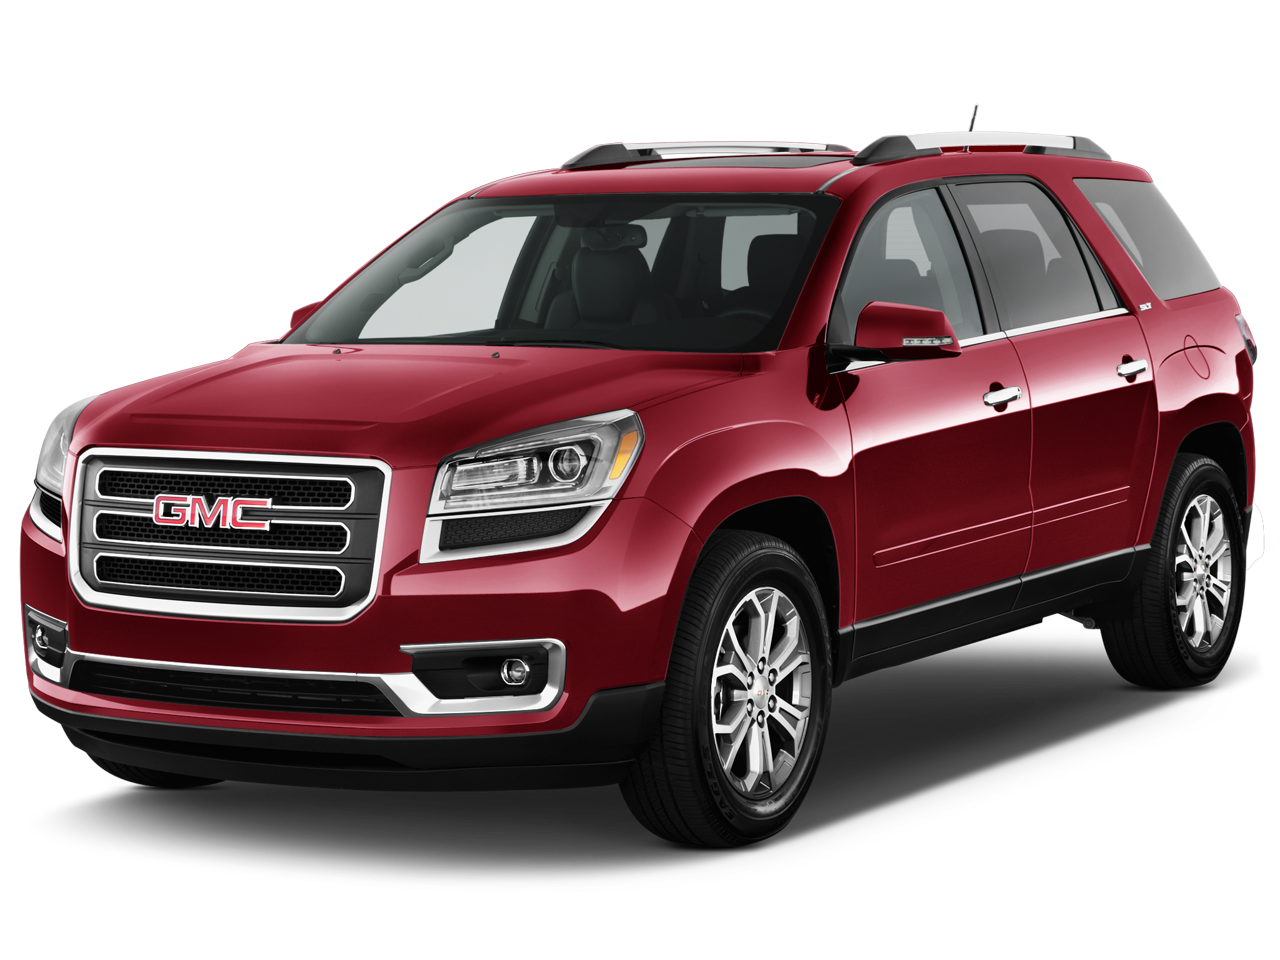 new 2017 gmc acadia limited limited near fenton mi randy wise auto. Black Bedroom Furniture Sets. Home Design Ideas